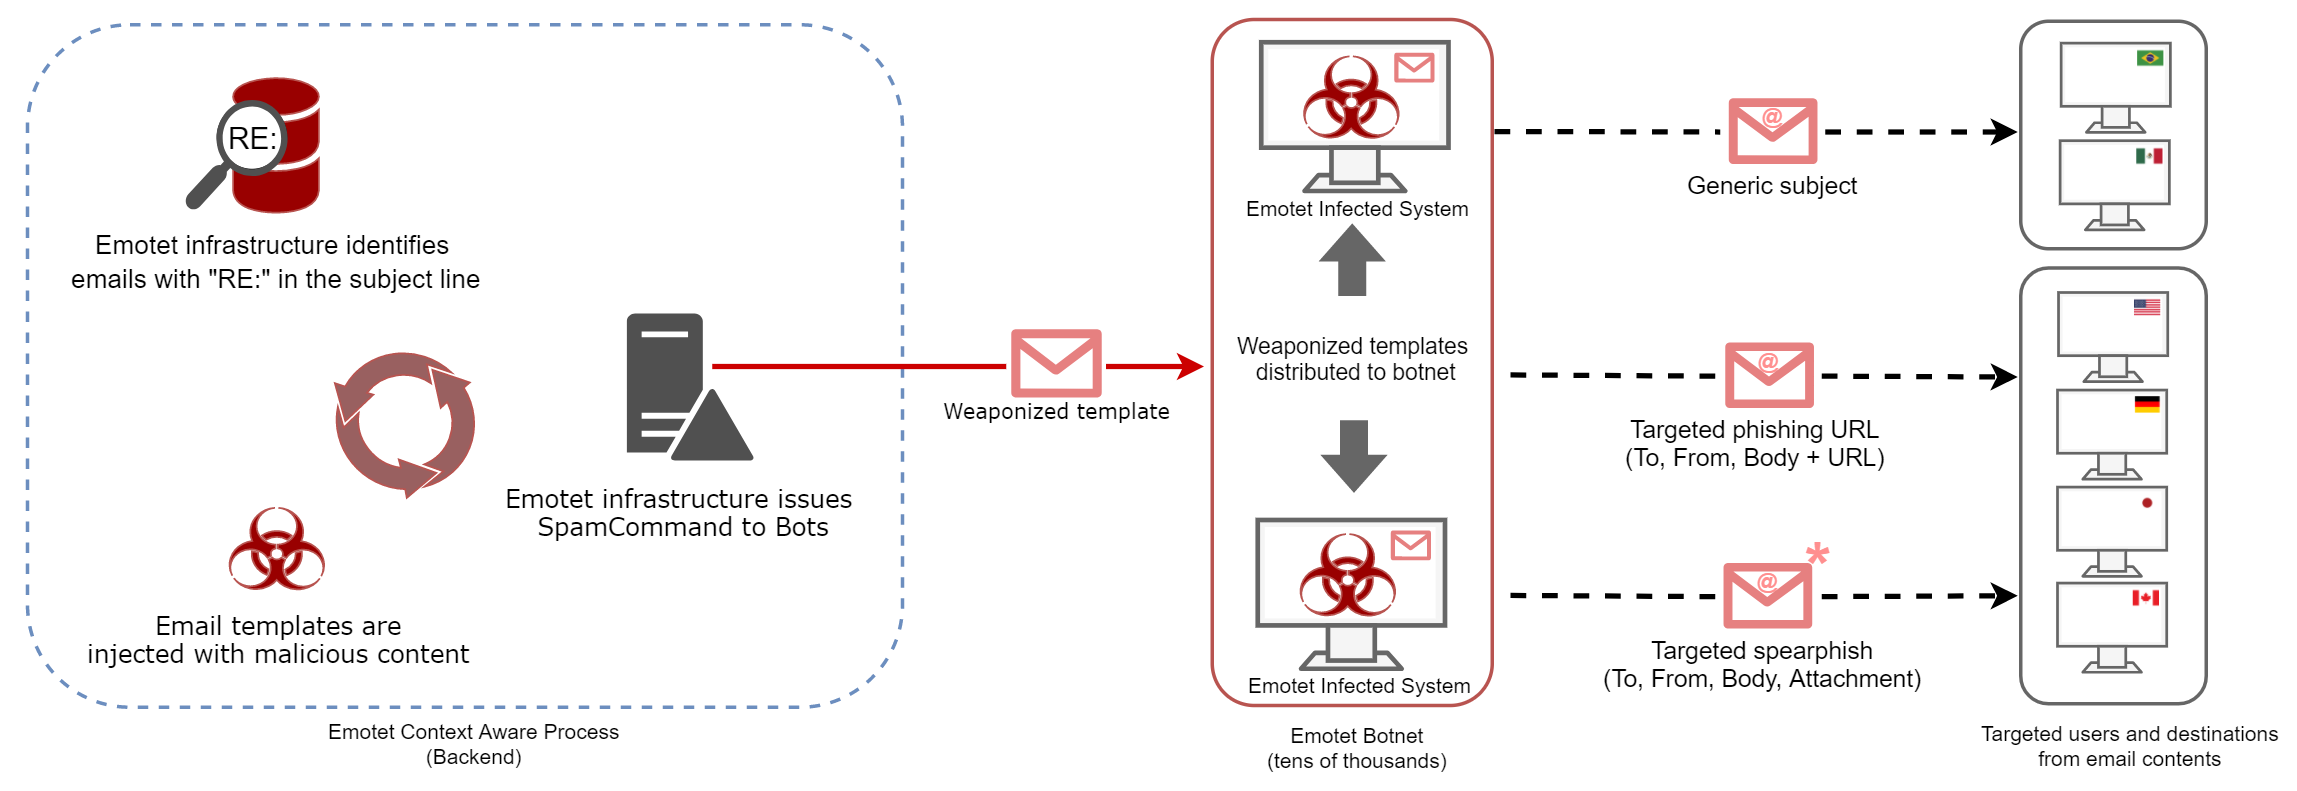 Emotet scales use of stolen email content for context-aware phishing